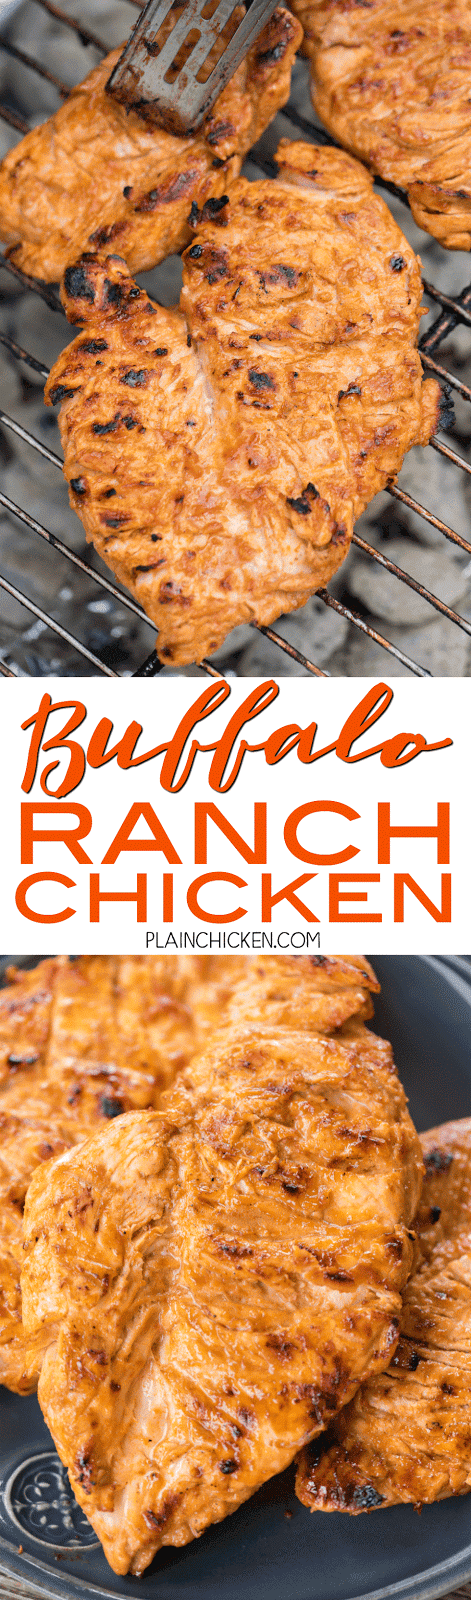 Buffalo Ranch Grilled Chicken - all the flavor of wings but without the messy fingers! This chicken is CRAZY good!! Only 5 ingredients in the marinade - olive oil, Ranch, buffalo sauce, Worcestershire and garlic. Can marinate overnight for maximum flavor. We always double the recipe and there are never any leftovers! Such a delicious quick and easy chicken recipe!